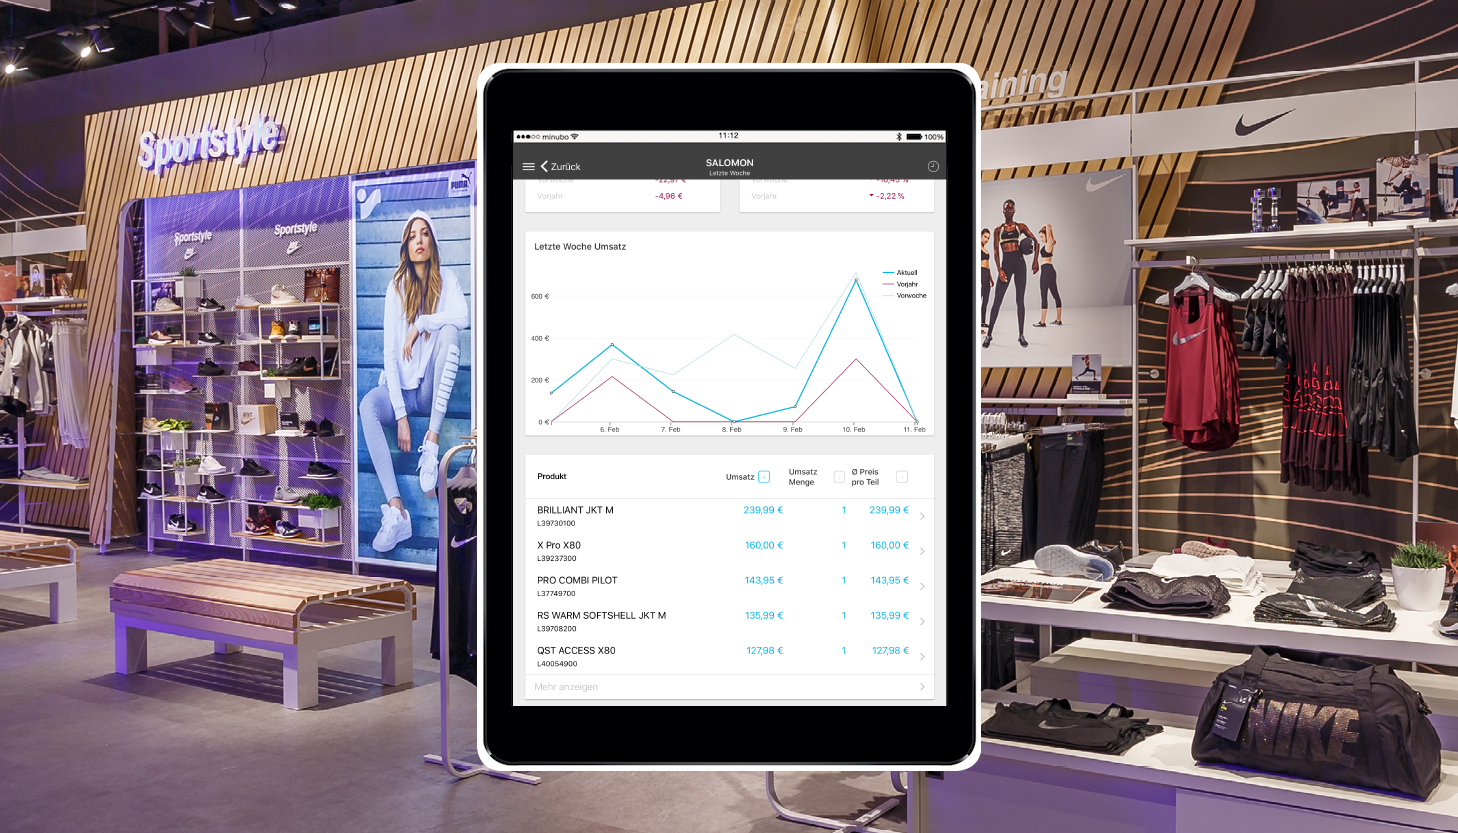 Product Performance in the minubo Store Monitor